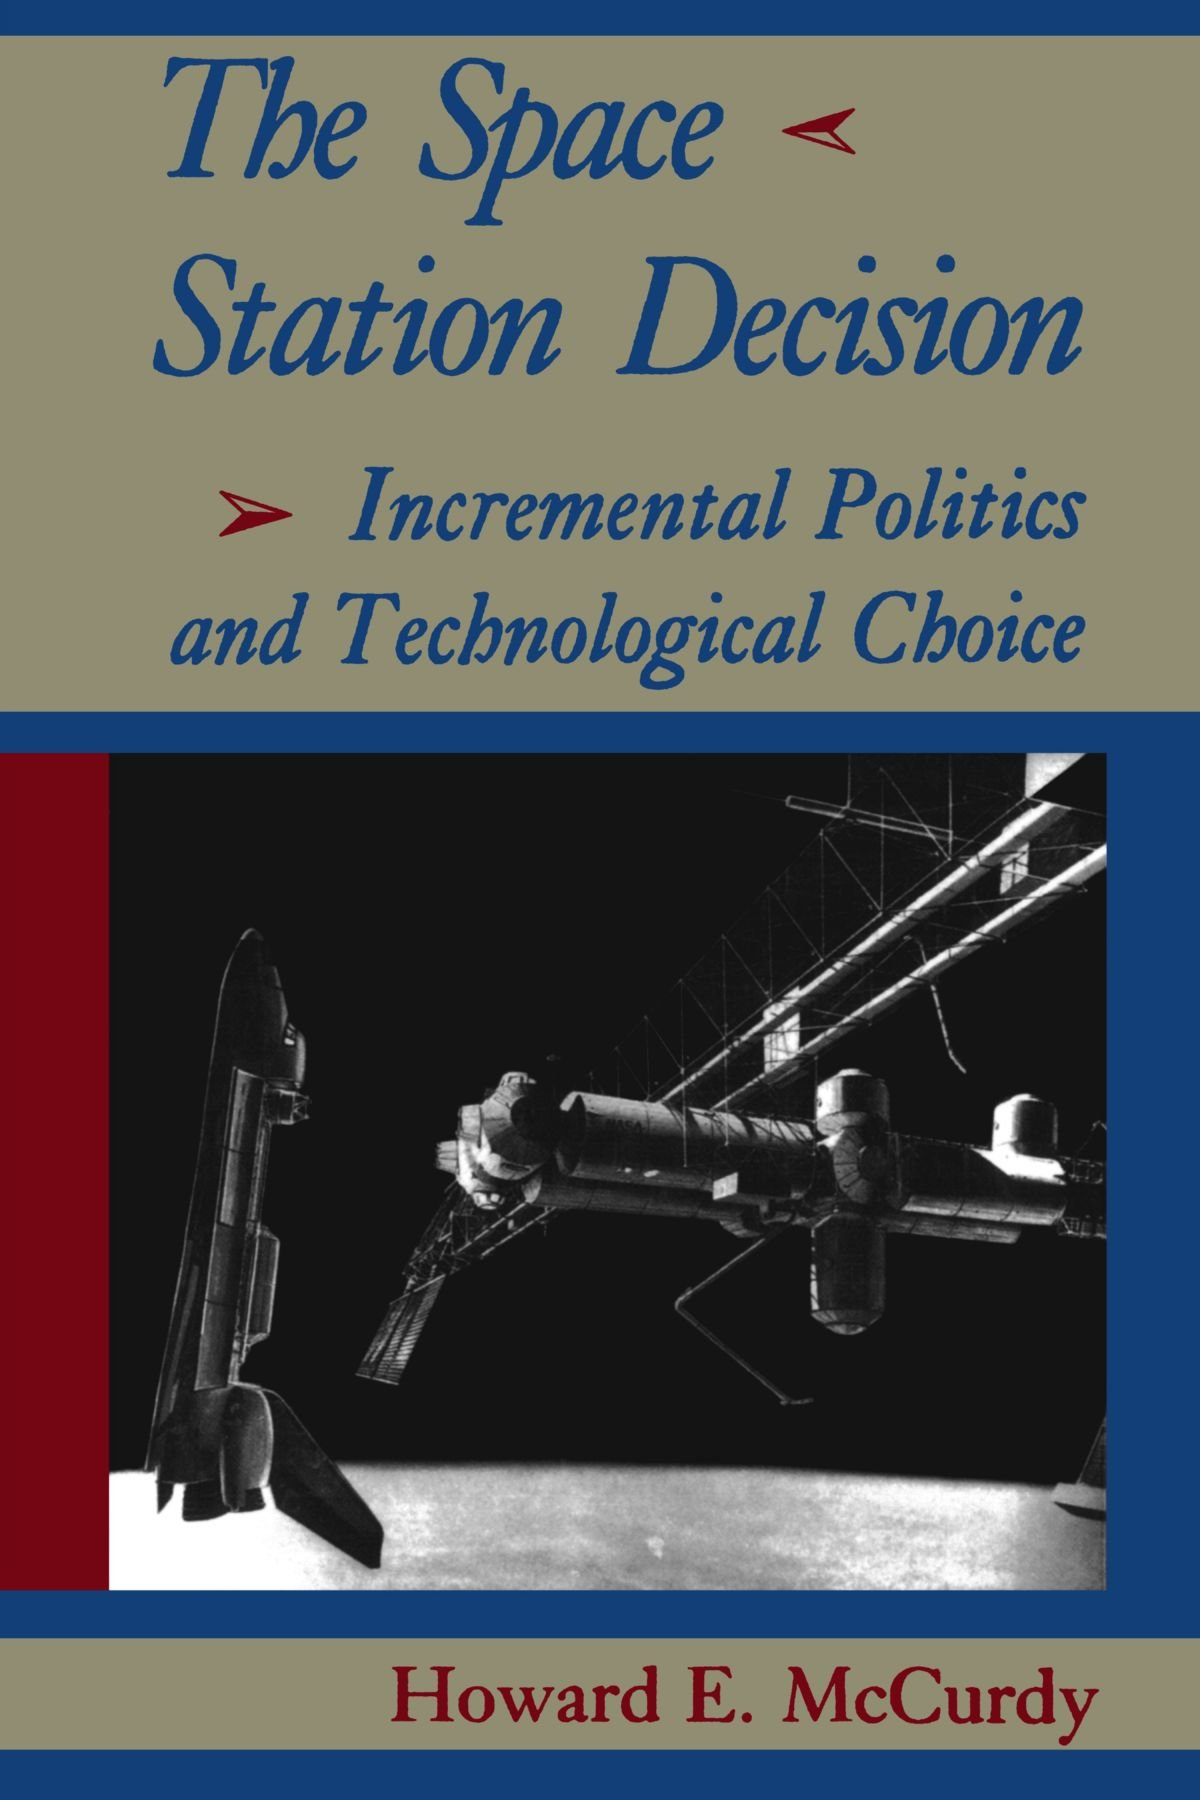 The Space Station Decision: Incremental Politics and Technological Choice (New Series in NASA History) ebook